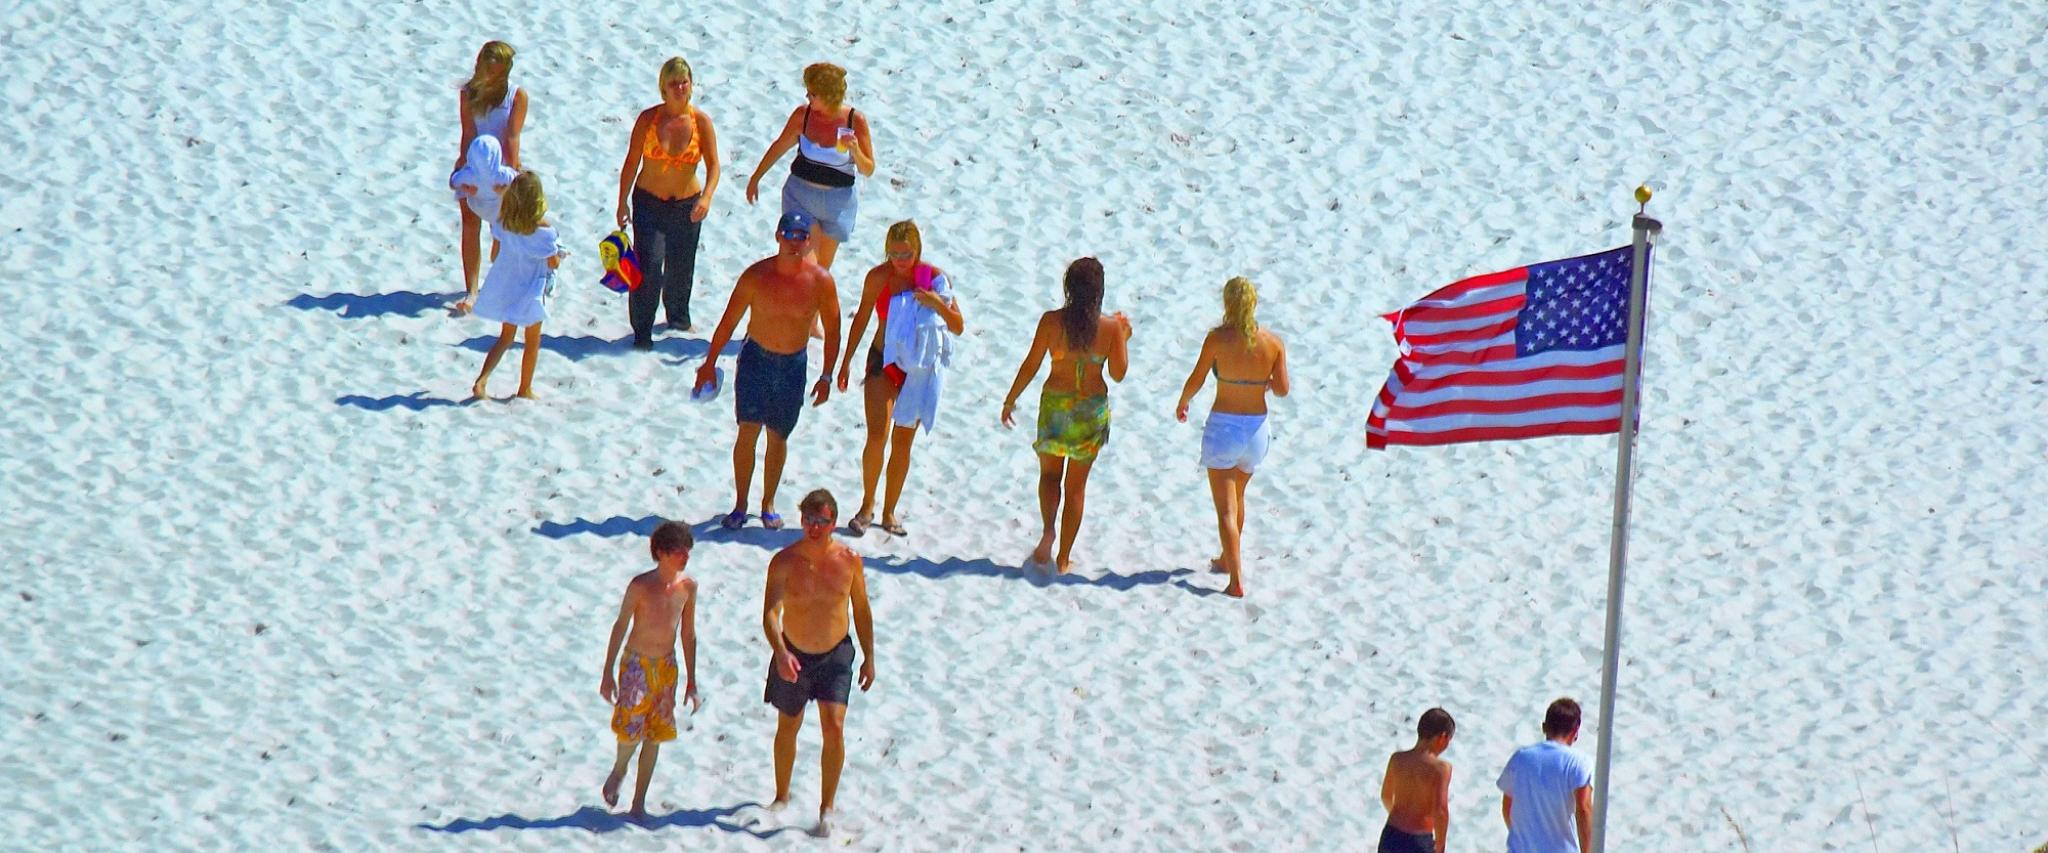 American flag and people on the beach